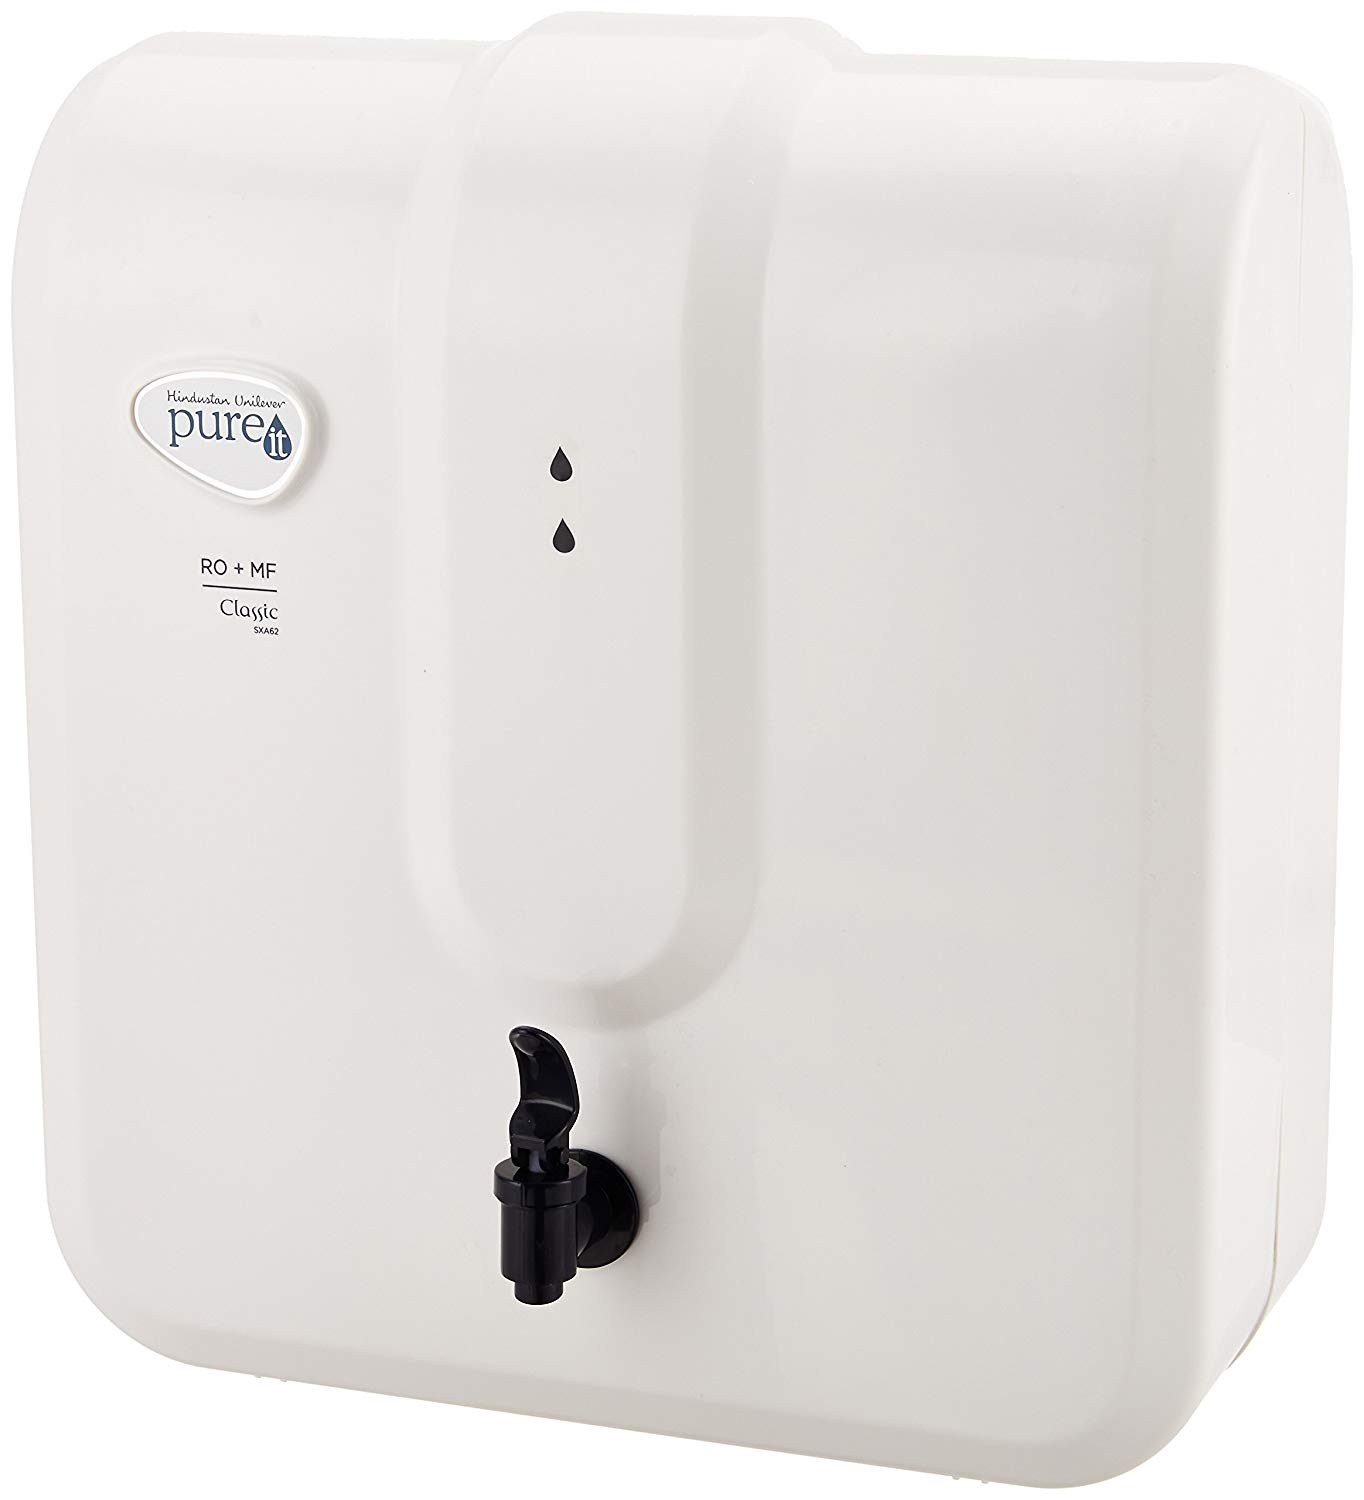 6 Best Water Purifiers From Pureit For Home Usage 2020 3